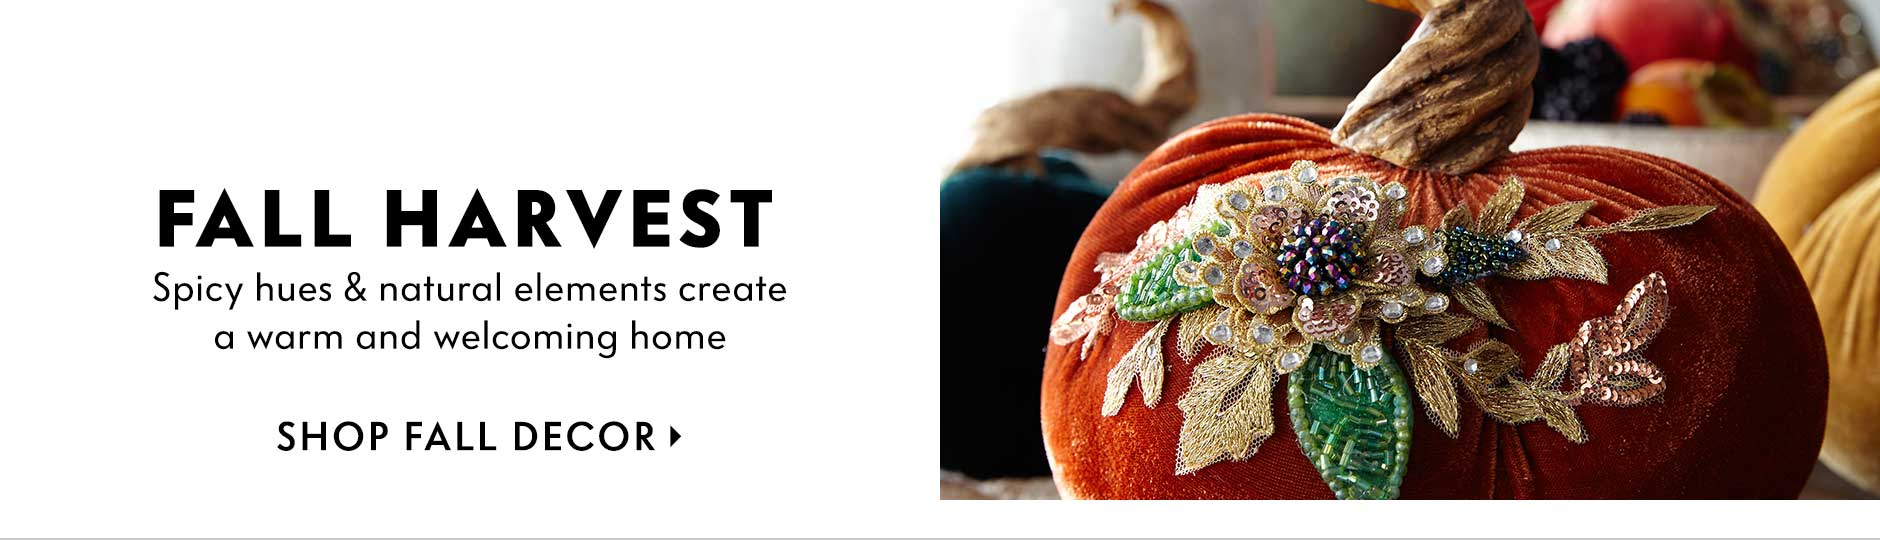 Fall Harvest - Spicy hues & natural elements create a warm and welcoming home